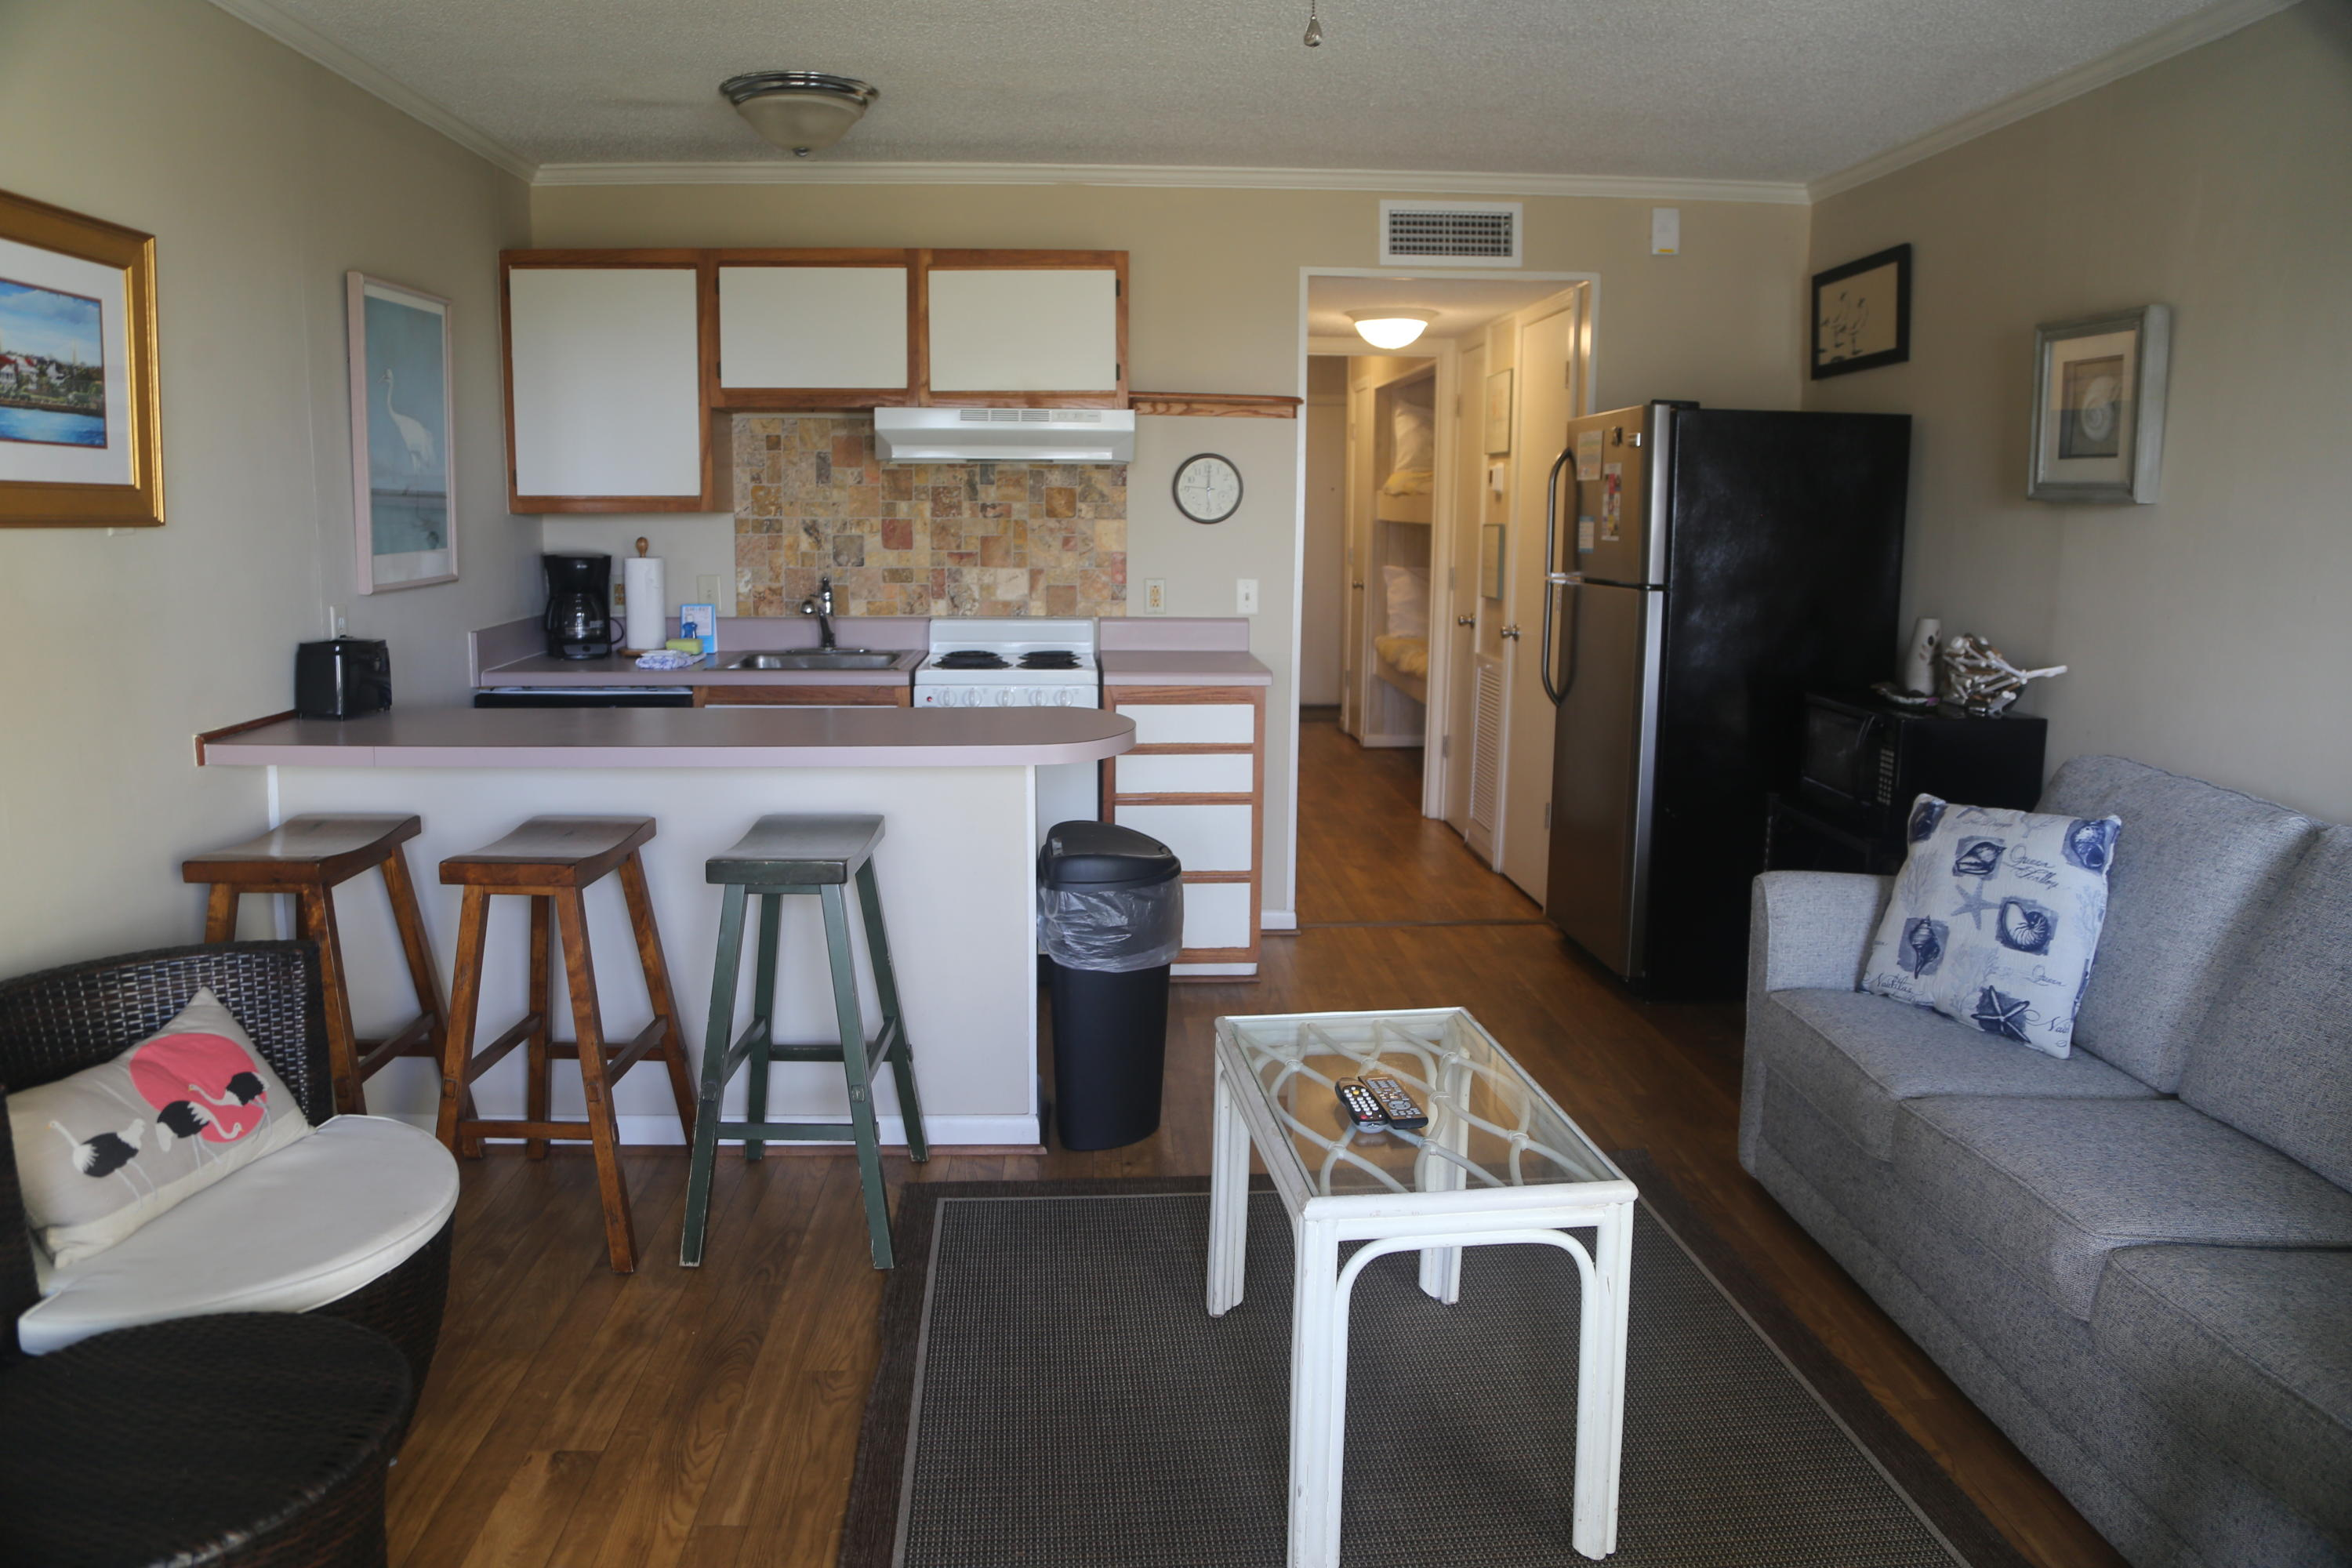 Sea Cabin On The Ocean Homes For Sale - 1300 Ocean, Isle of Palms, SC - 35